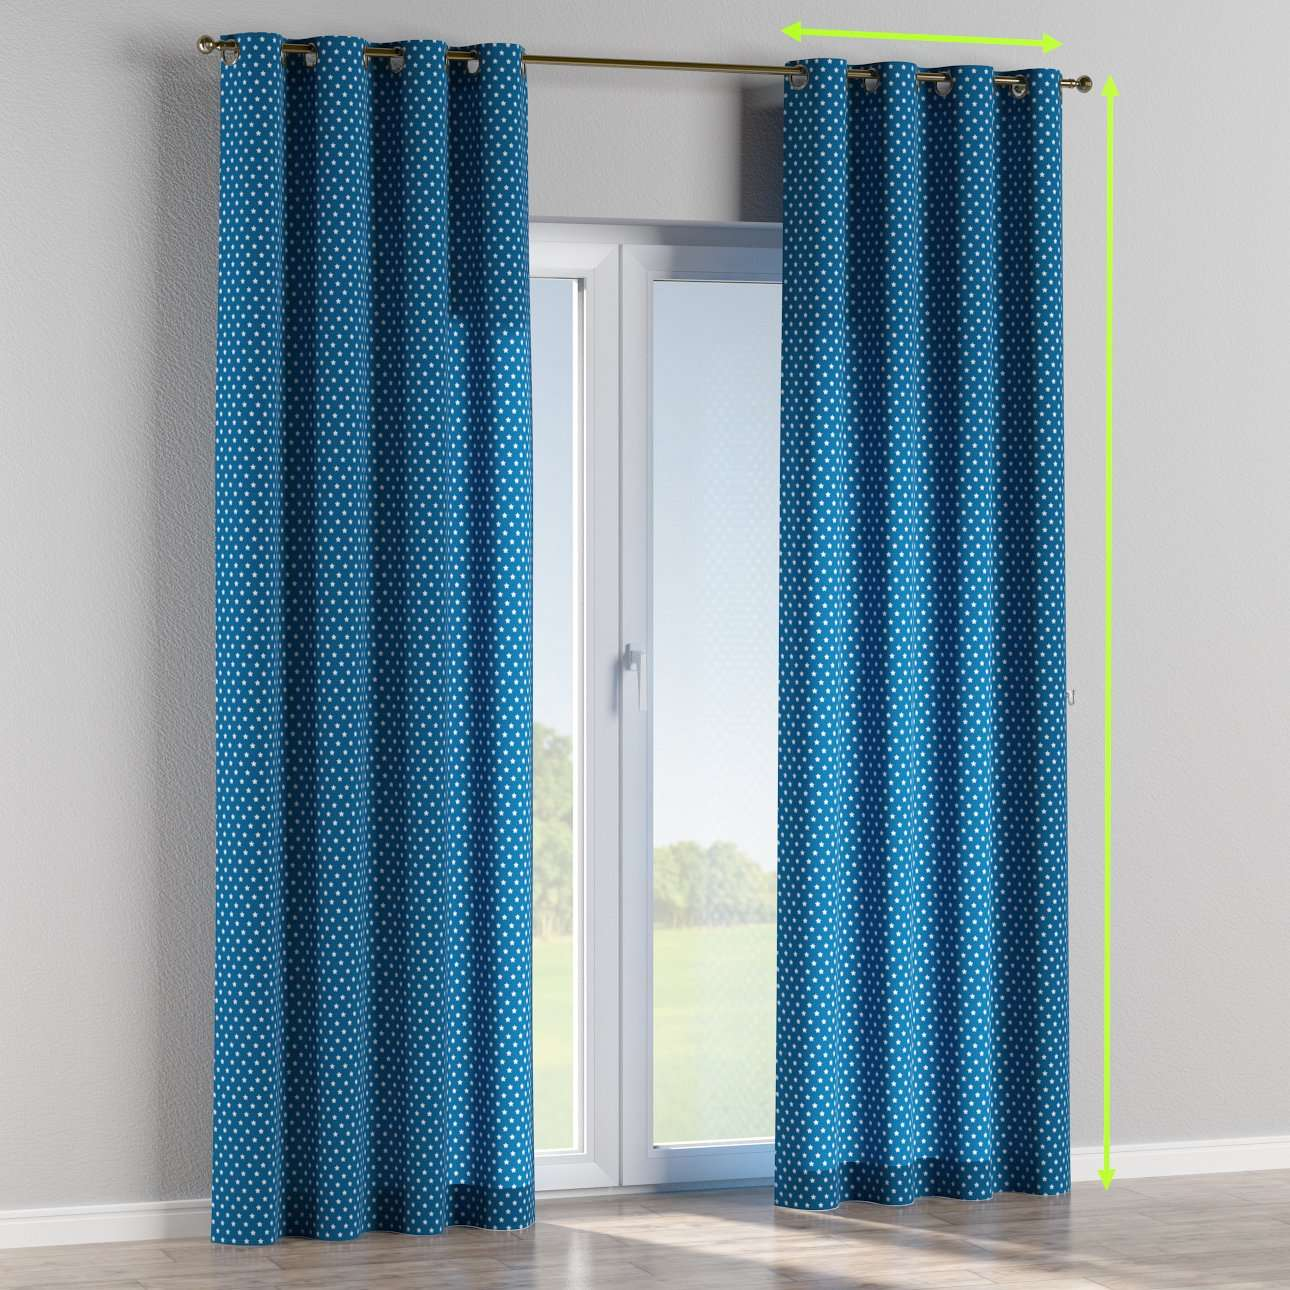 Eyelet curtains in collection Ashley, fabric: 137-72